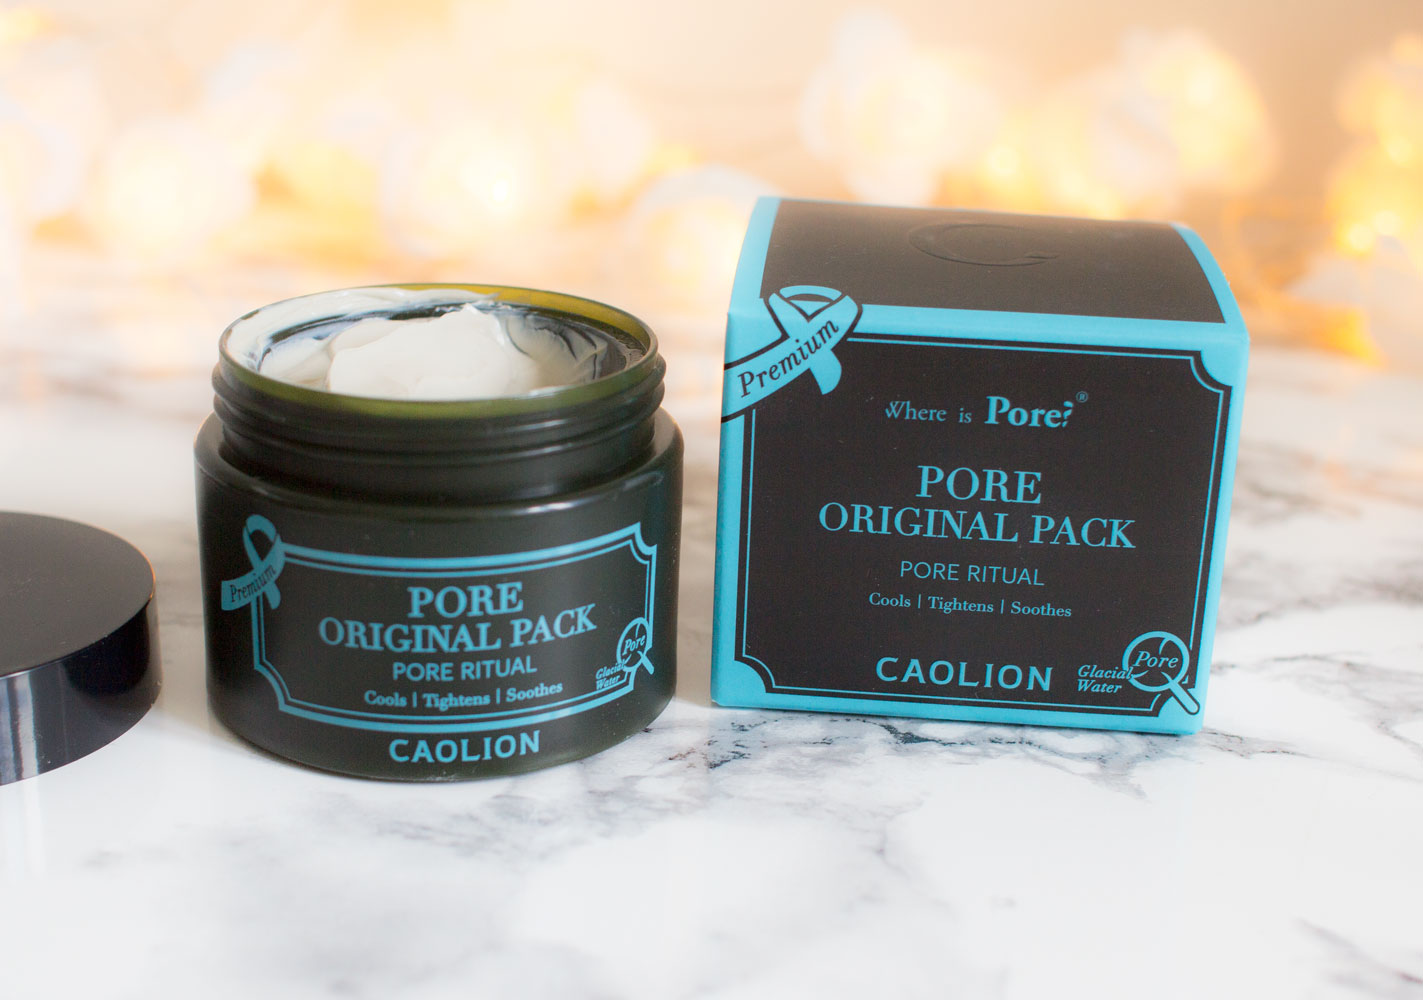 Caolion Premium Original Pore Pack Review Peach & Lily